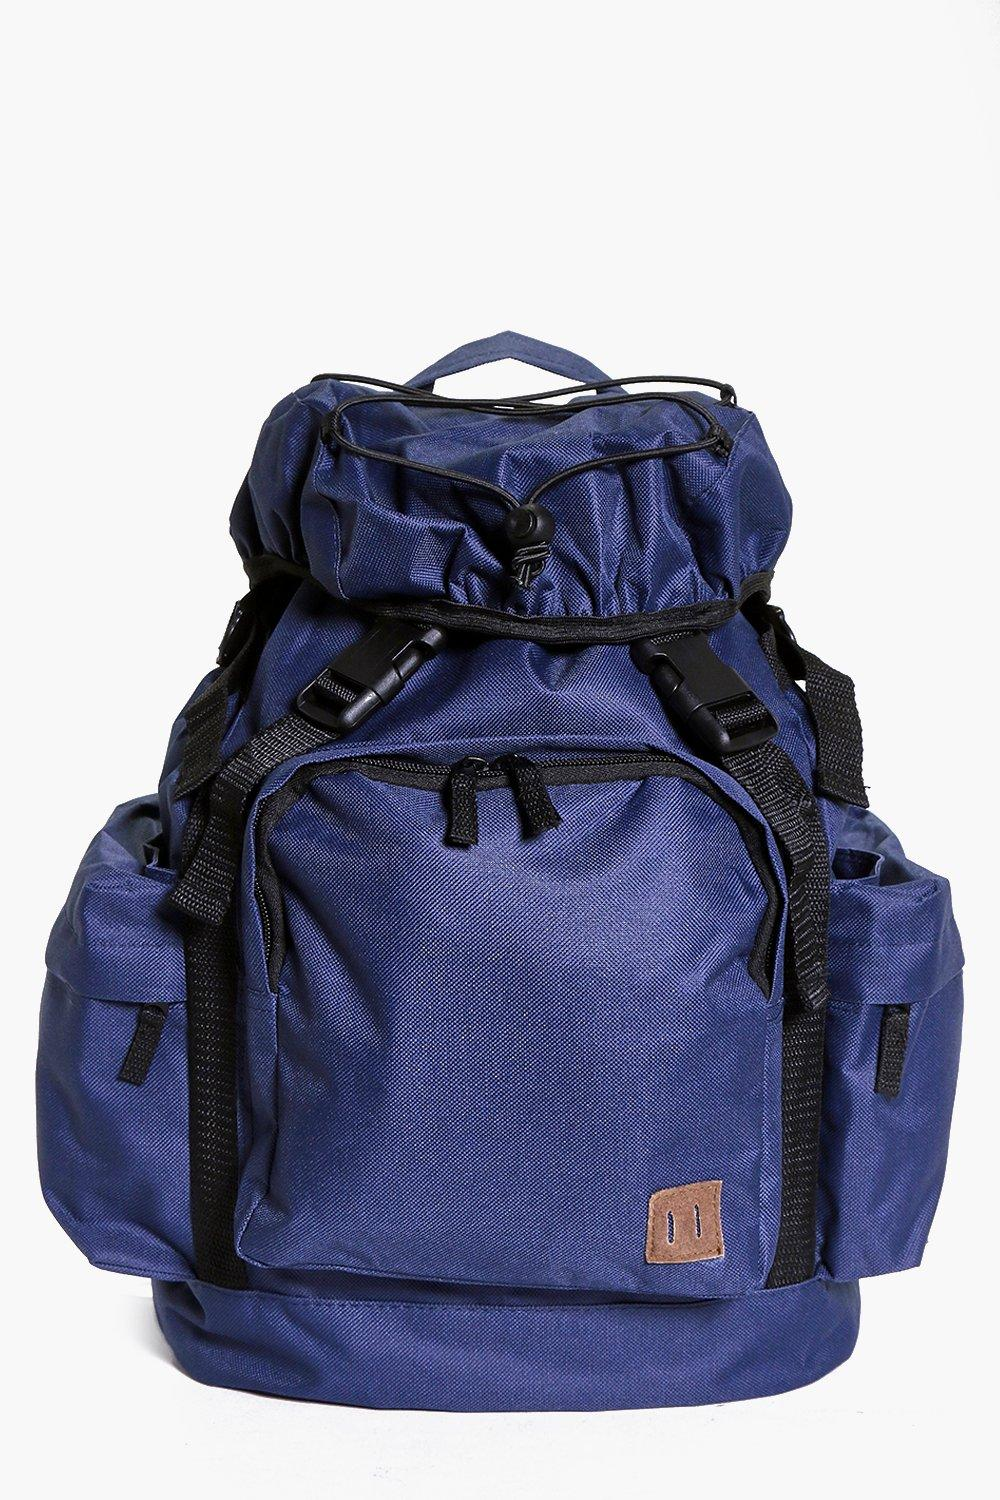 Multi Pocket Double Strap Rucksack